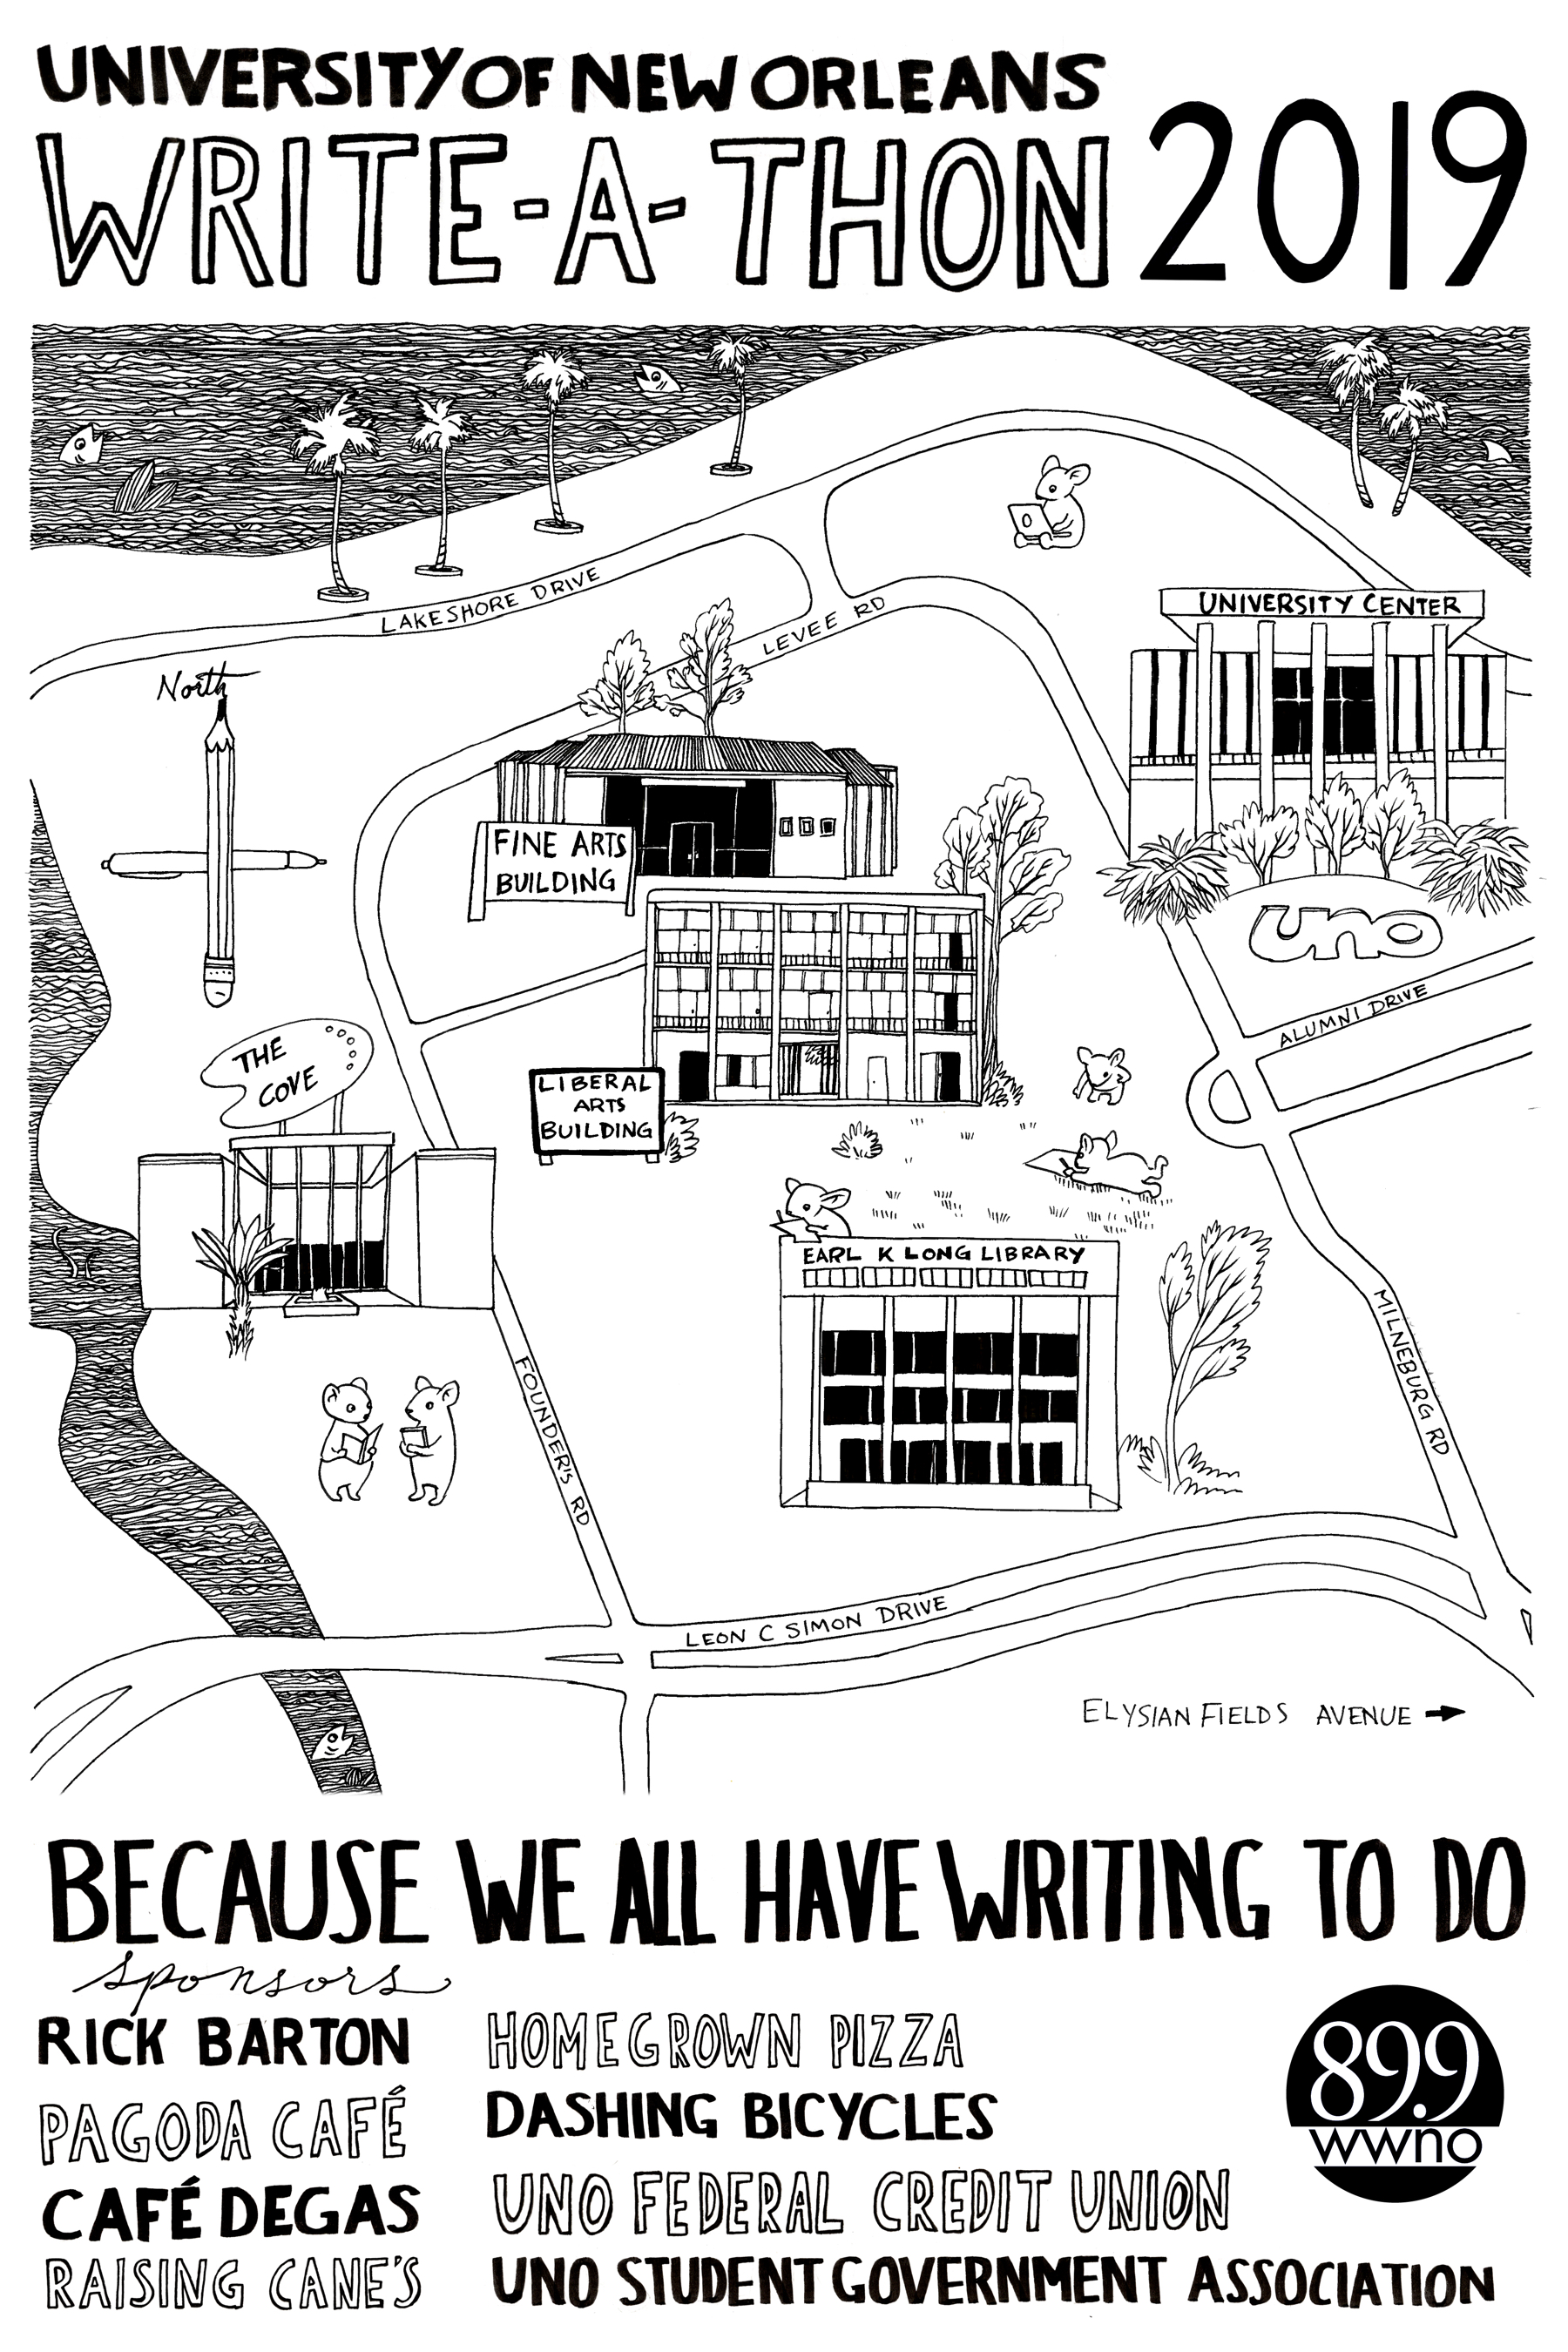 University of New Orleans Write-A-Thon 2019